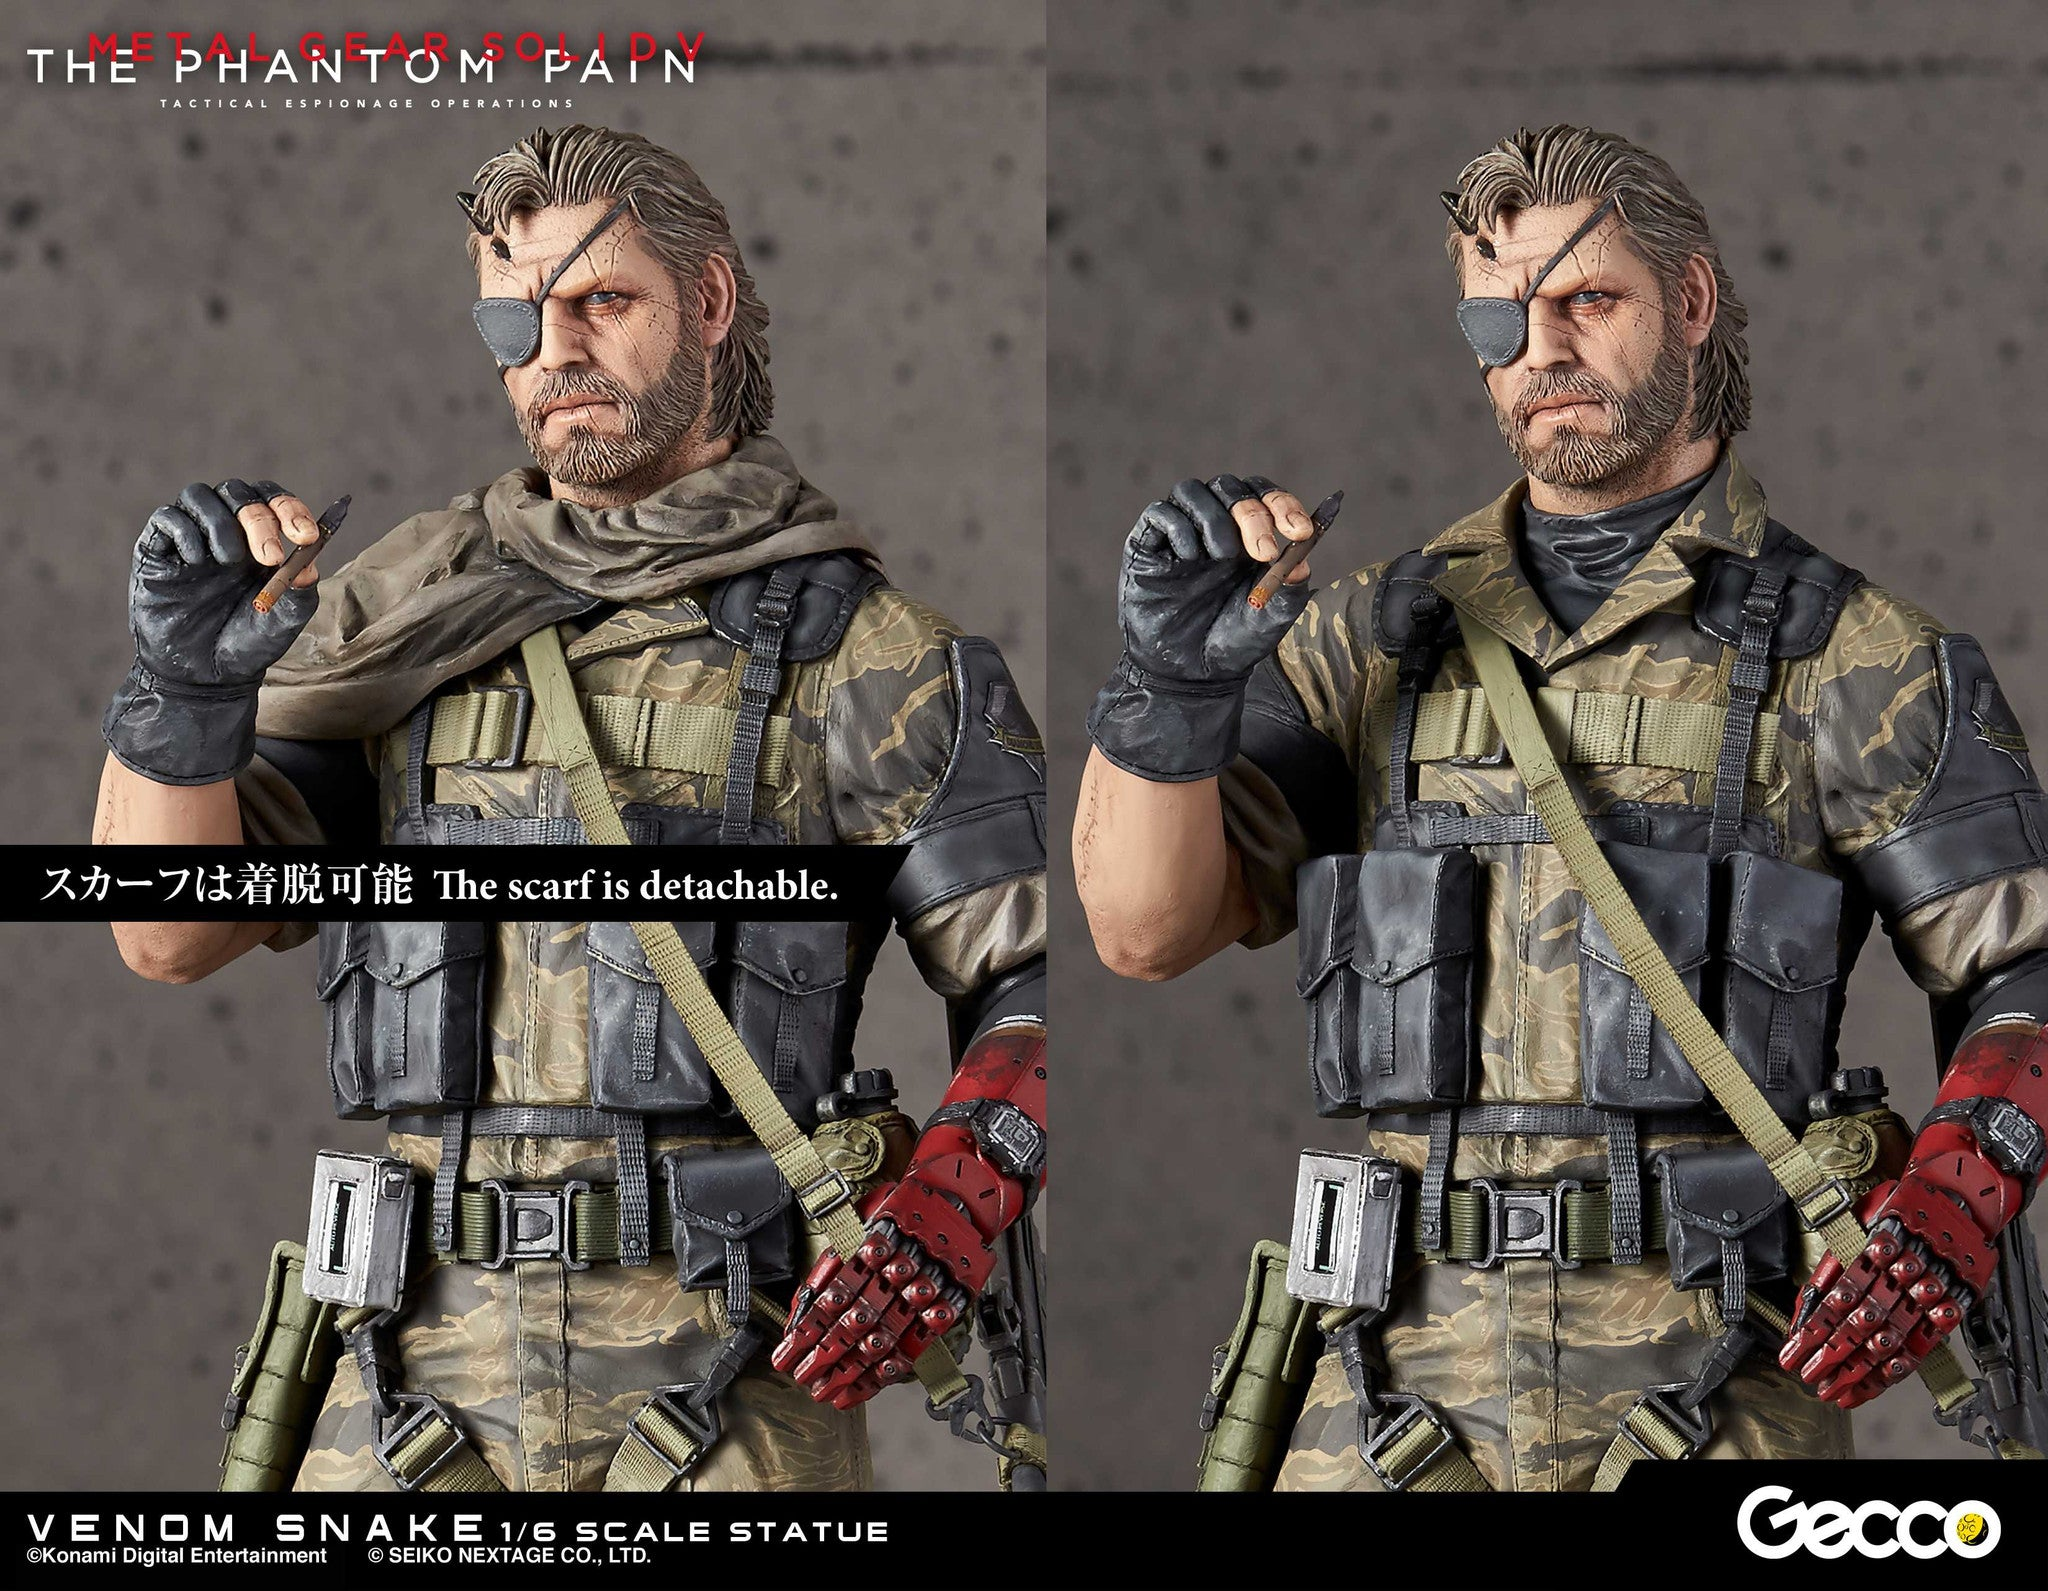 Gecco - Metal Gear Solid V: The Phantom Pain - Venom Snake 1/6 Scale Statue - Marvelous Toys - 27